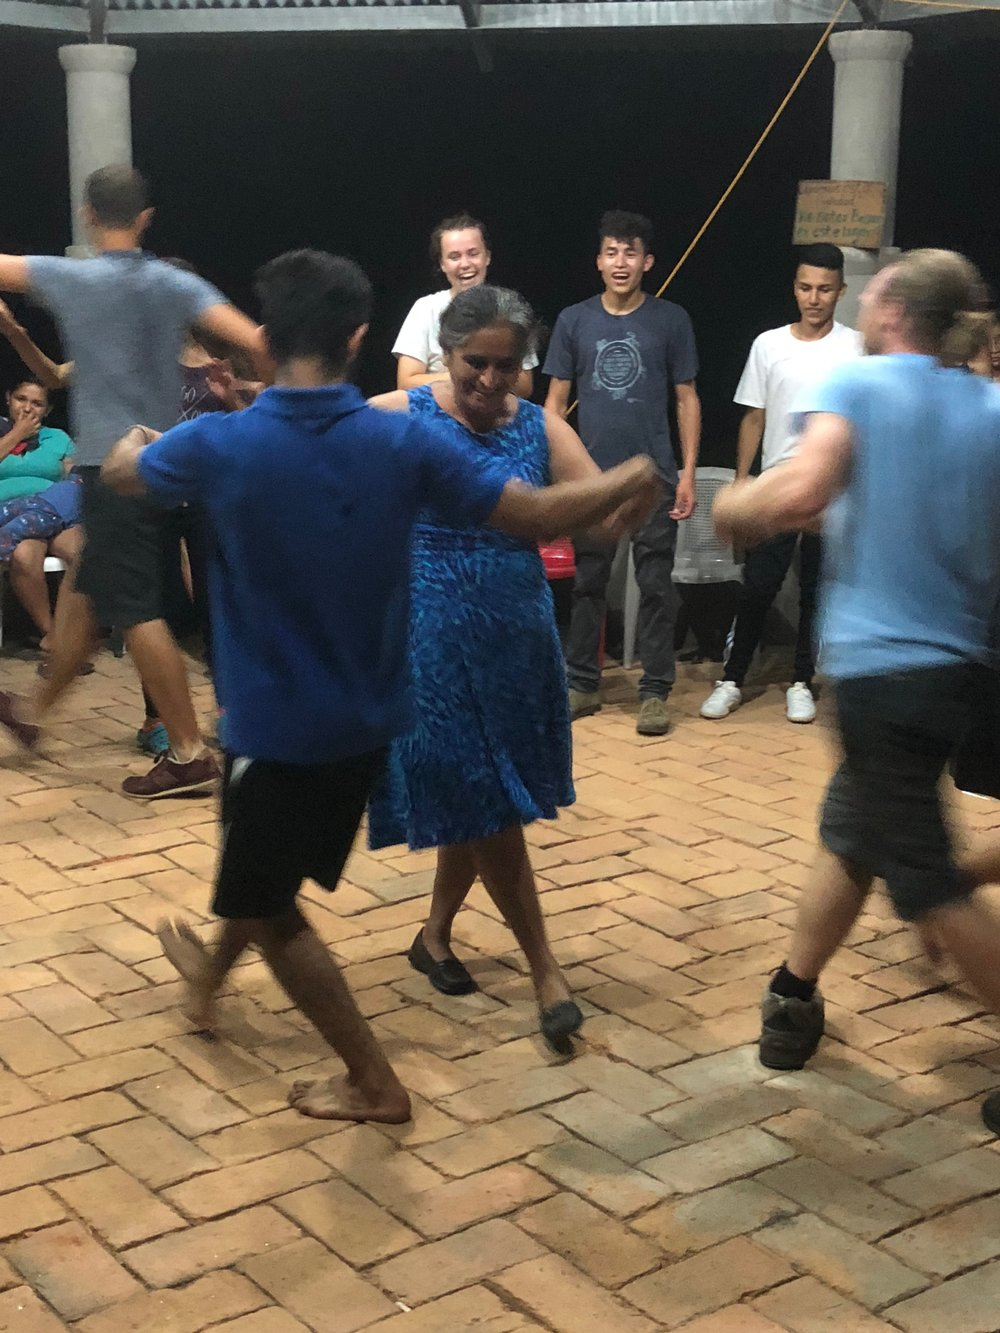 Kyle shared his love of swing dancing with about 40 youth in El Salvador. The youth loved it so much, they kept dancing an hour and a half longer than scheduled!